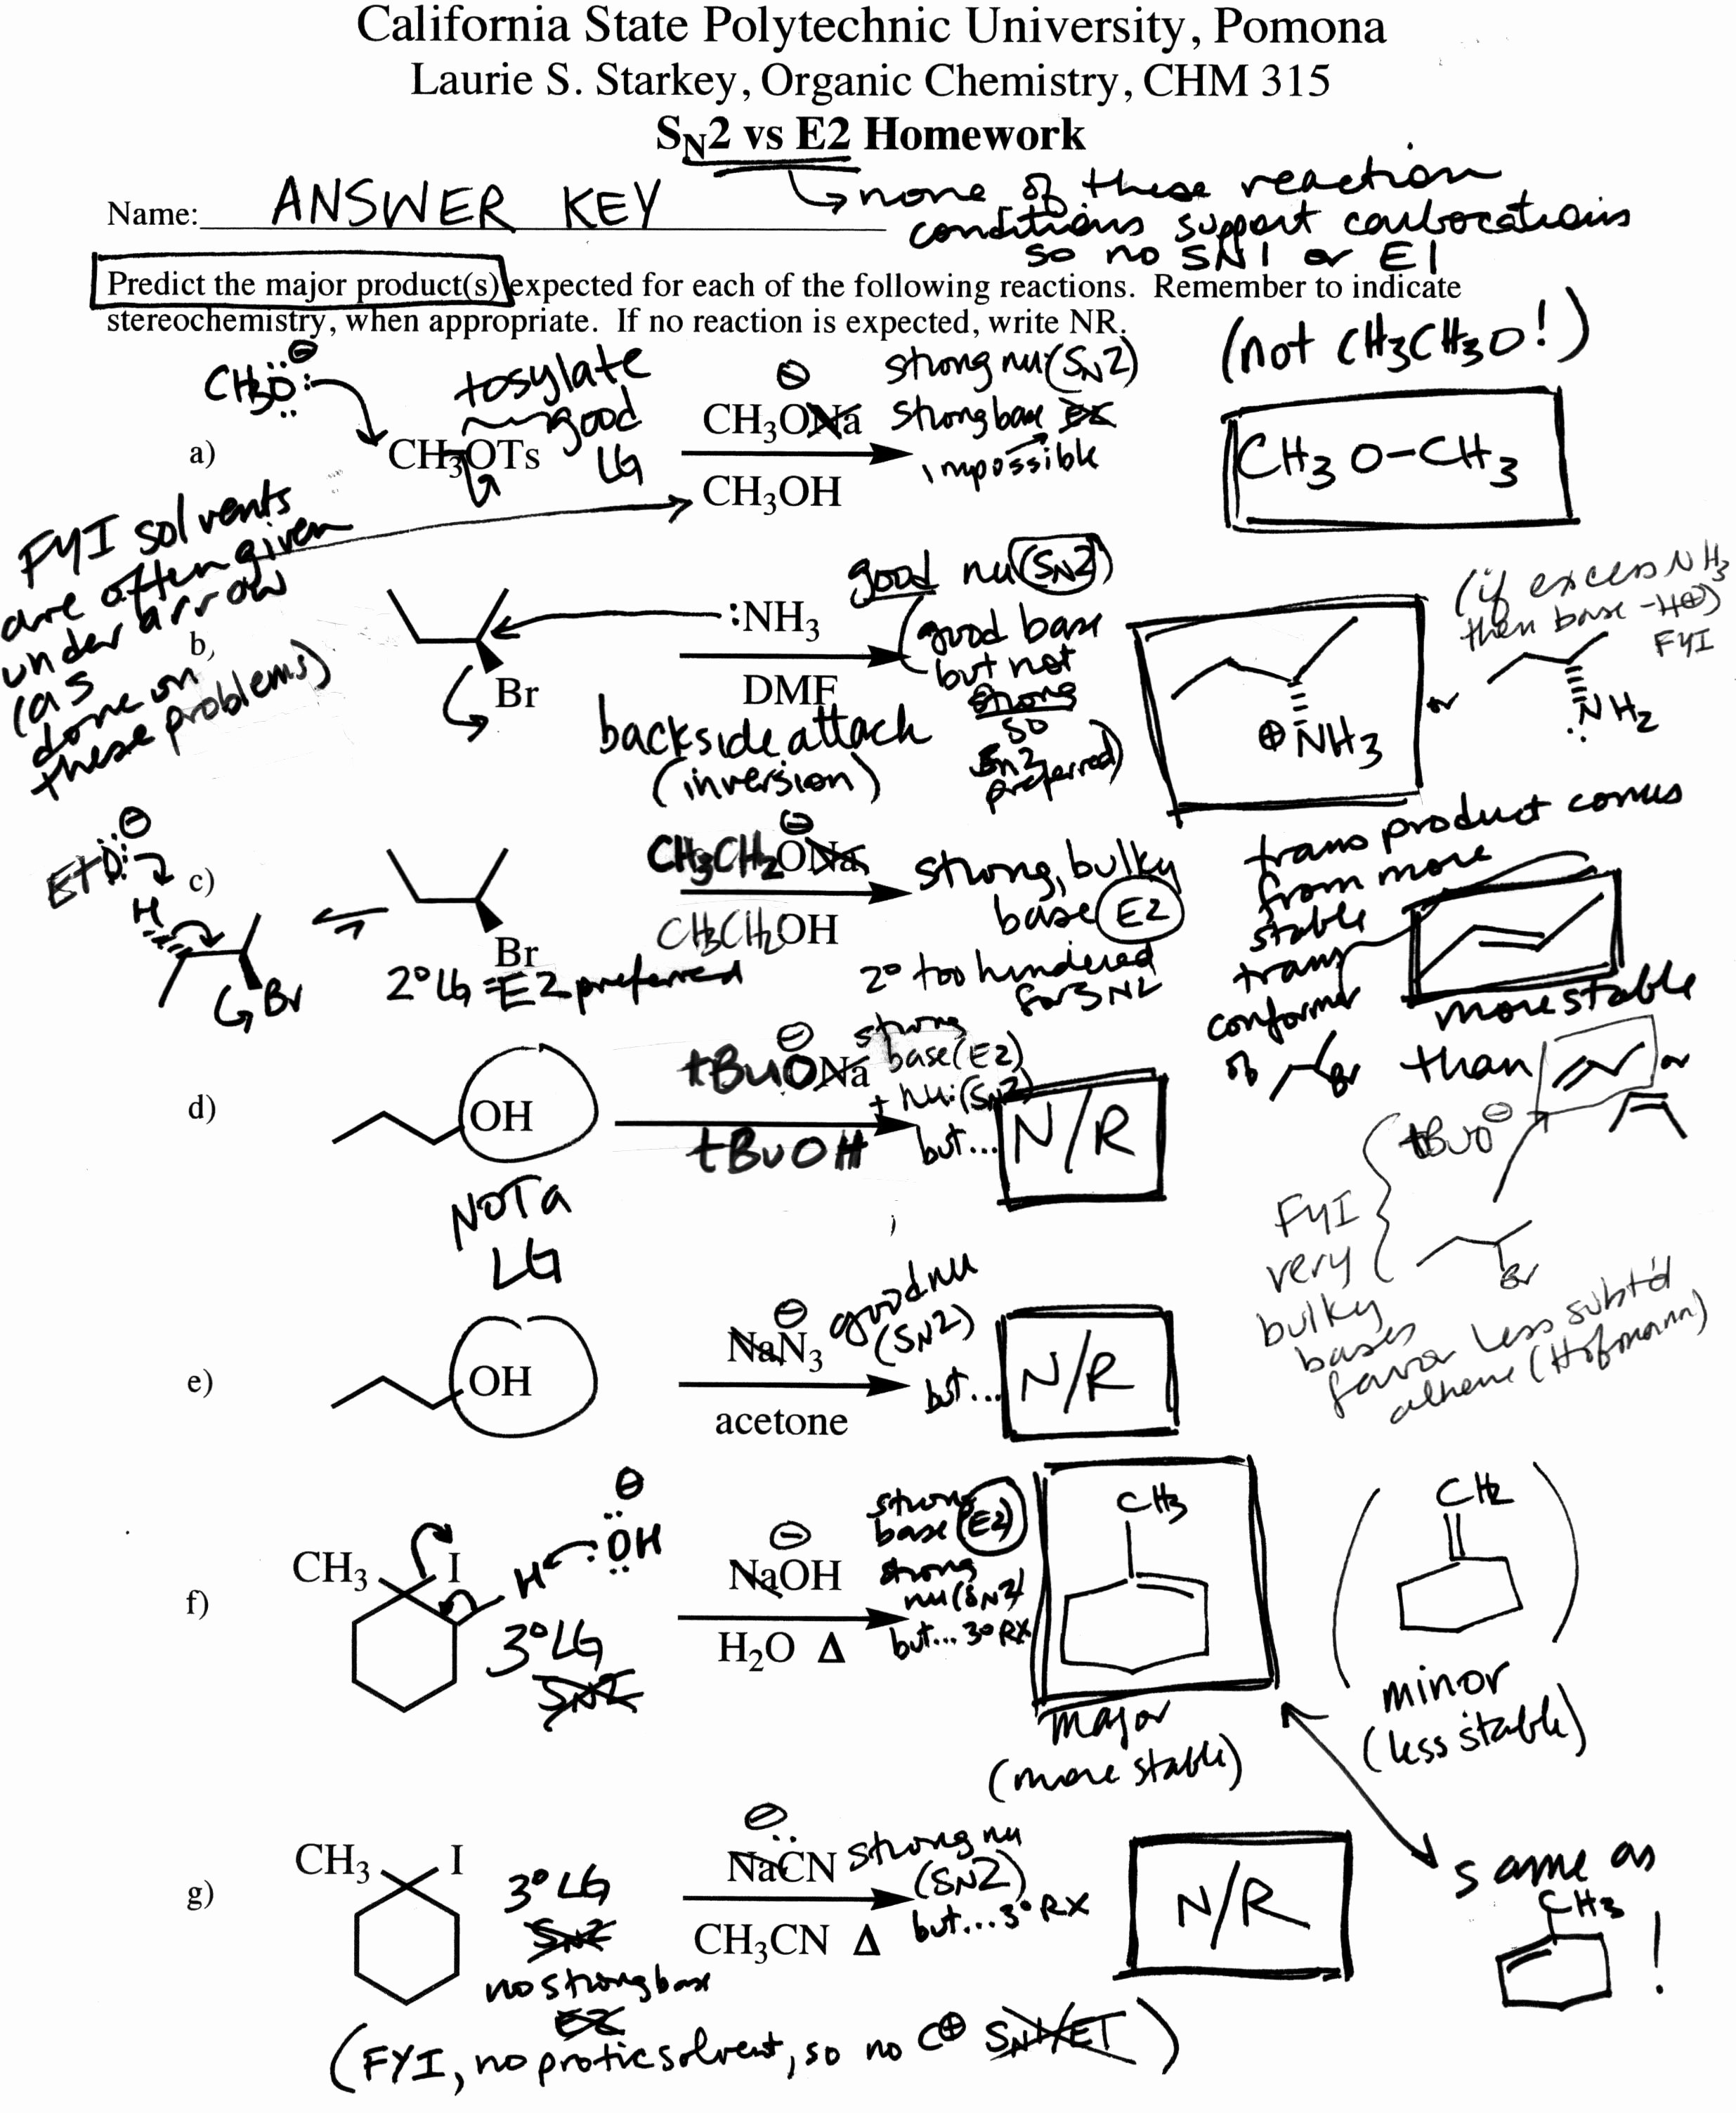 50 Organic Chemistry Worksheet With Answers